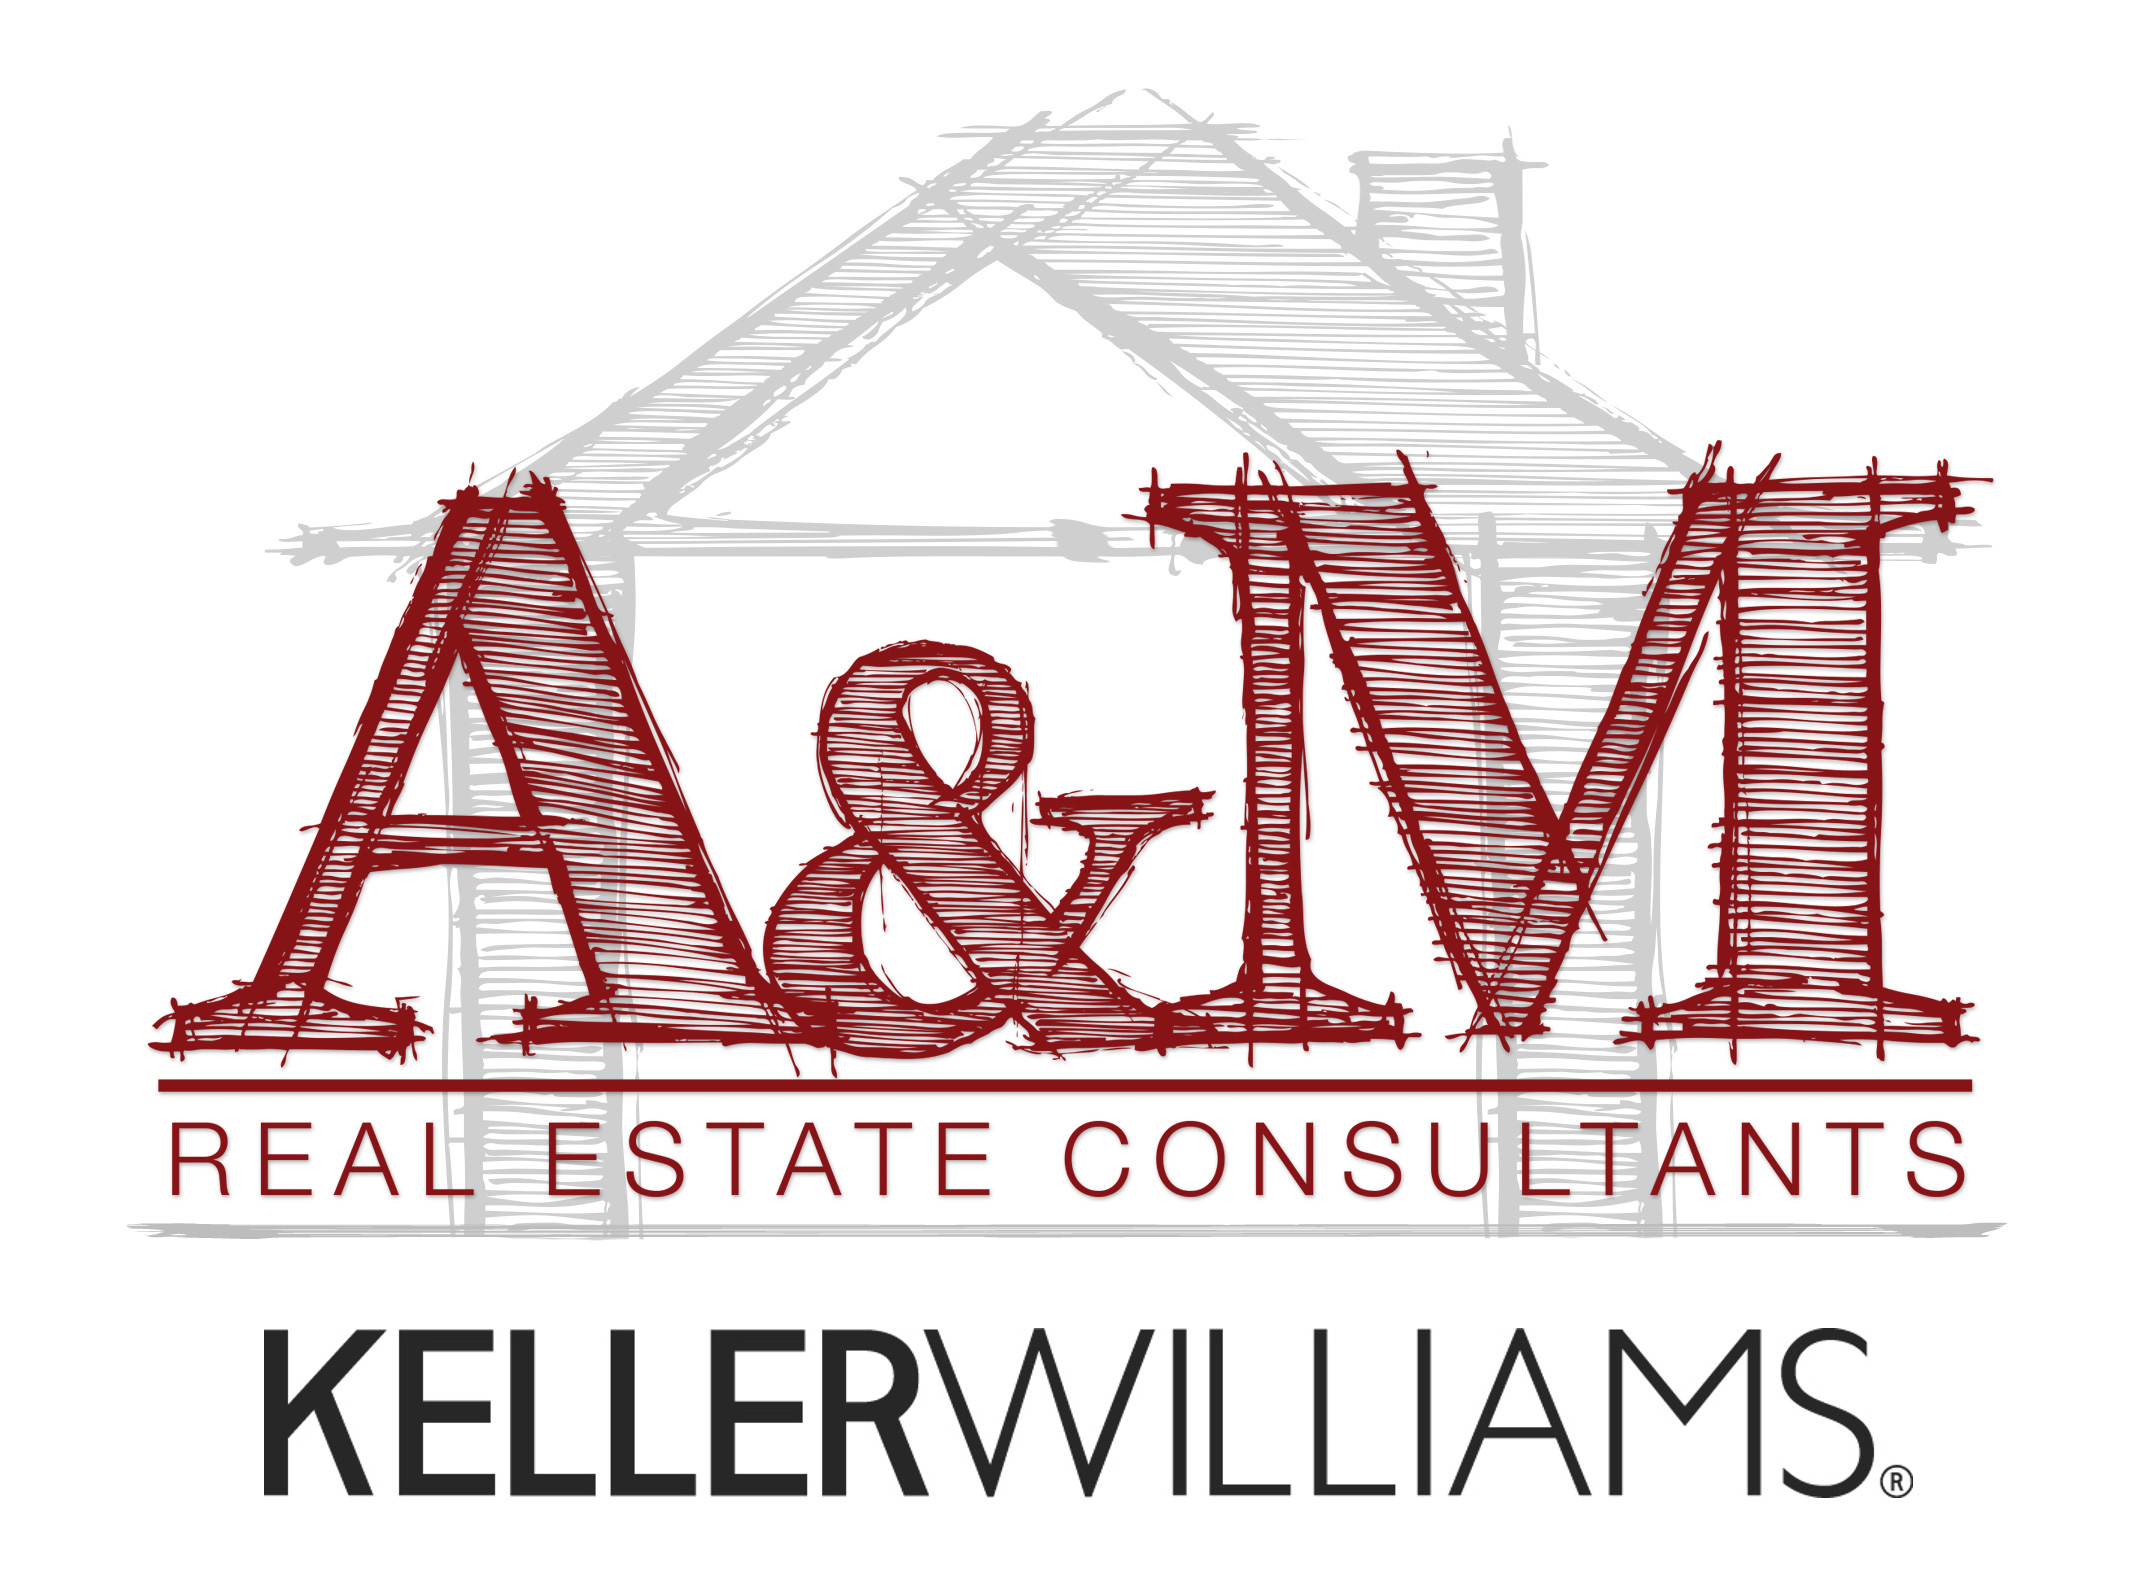 A&M Real Estate Consultants - Keller Williams Realty logo